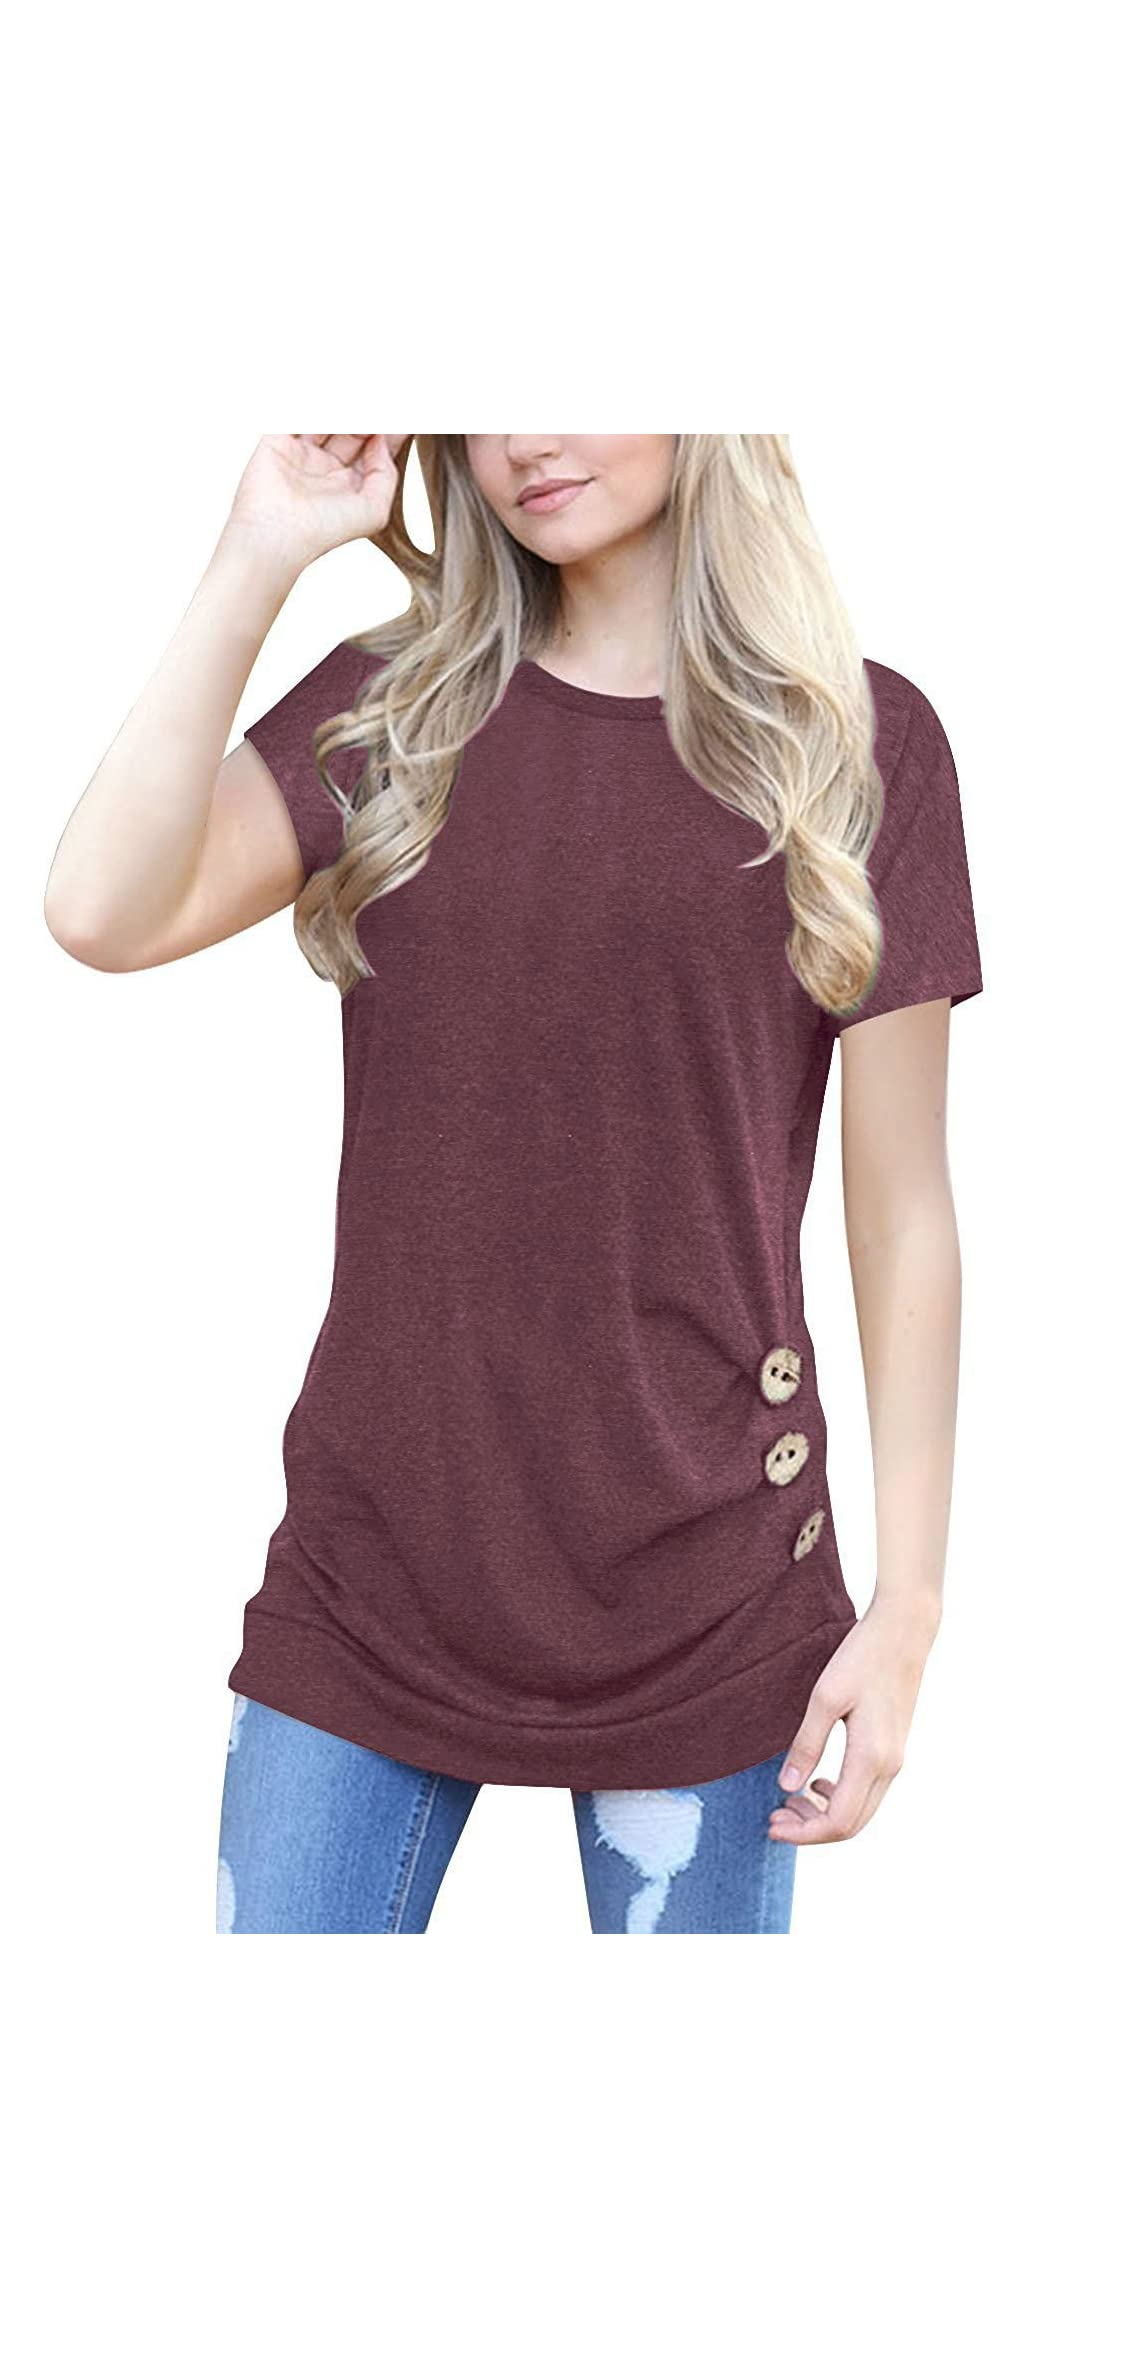 Women's Casual Short Sleeve Round Neck Loose Tunic T